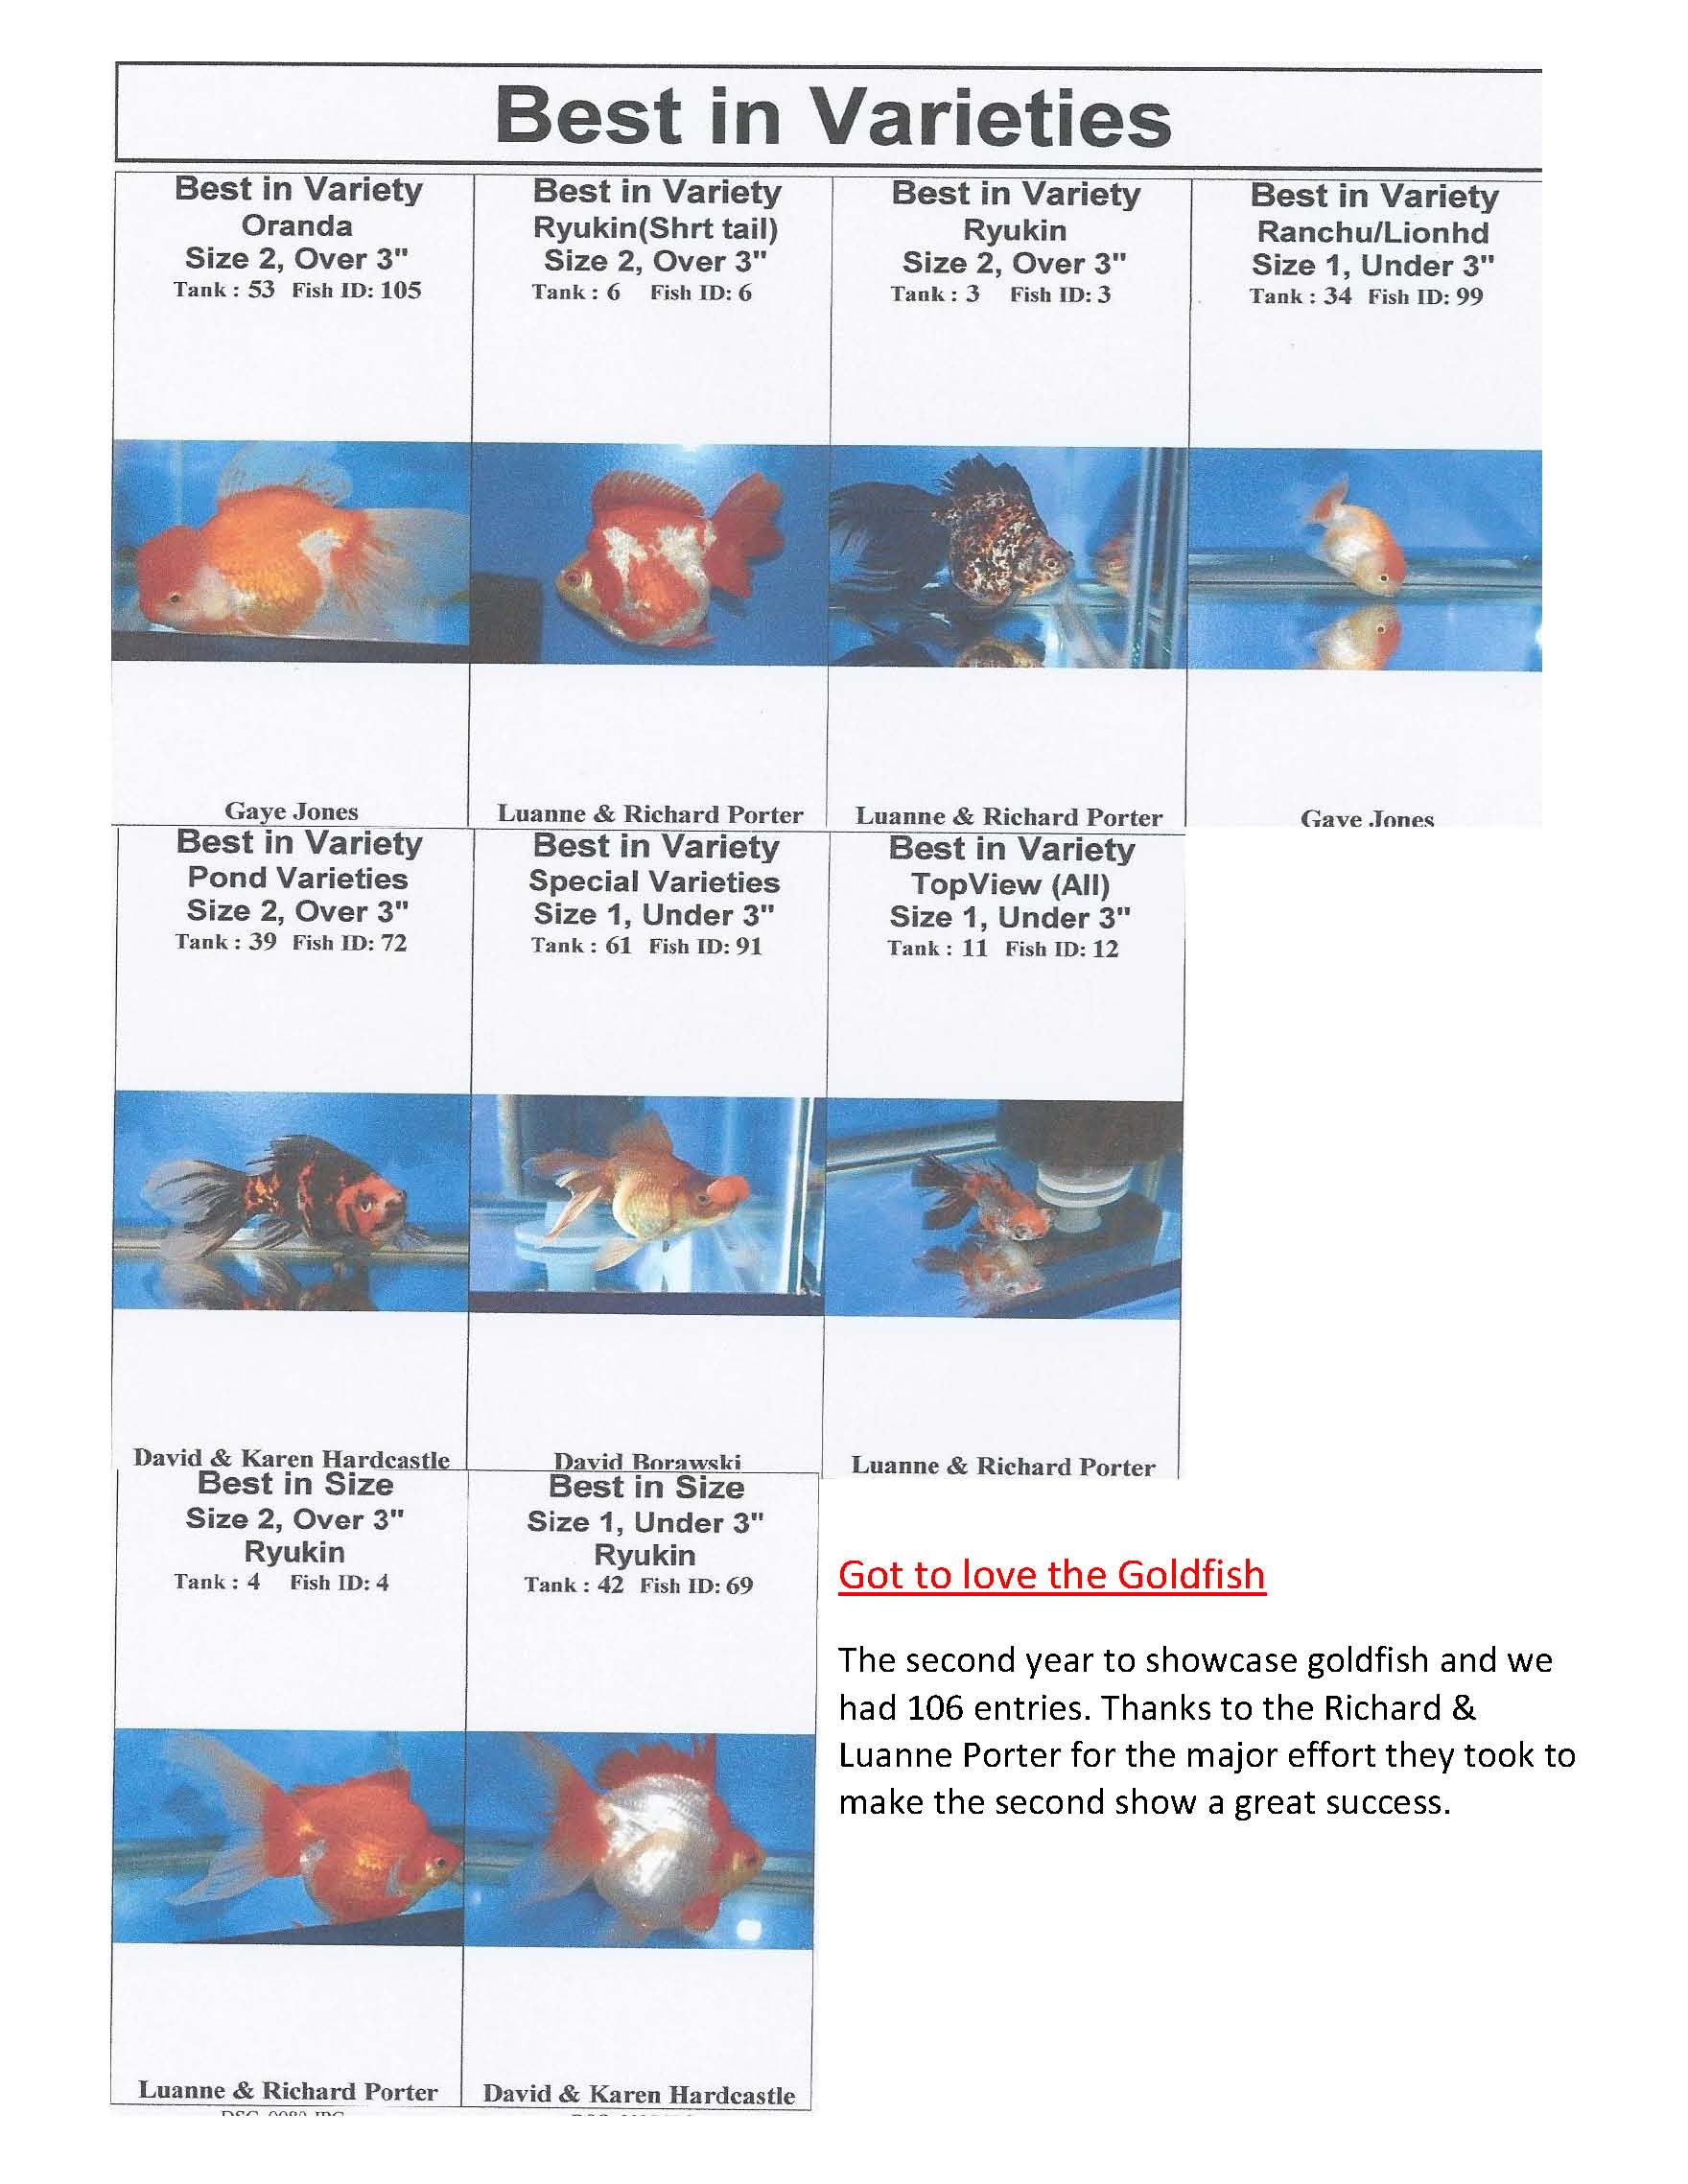 2014 Central Florida Goldfish Show Results_Page_2.jpg